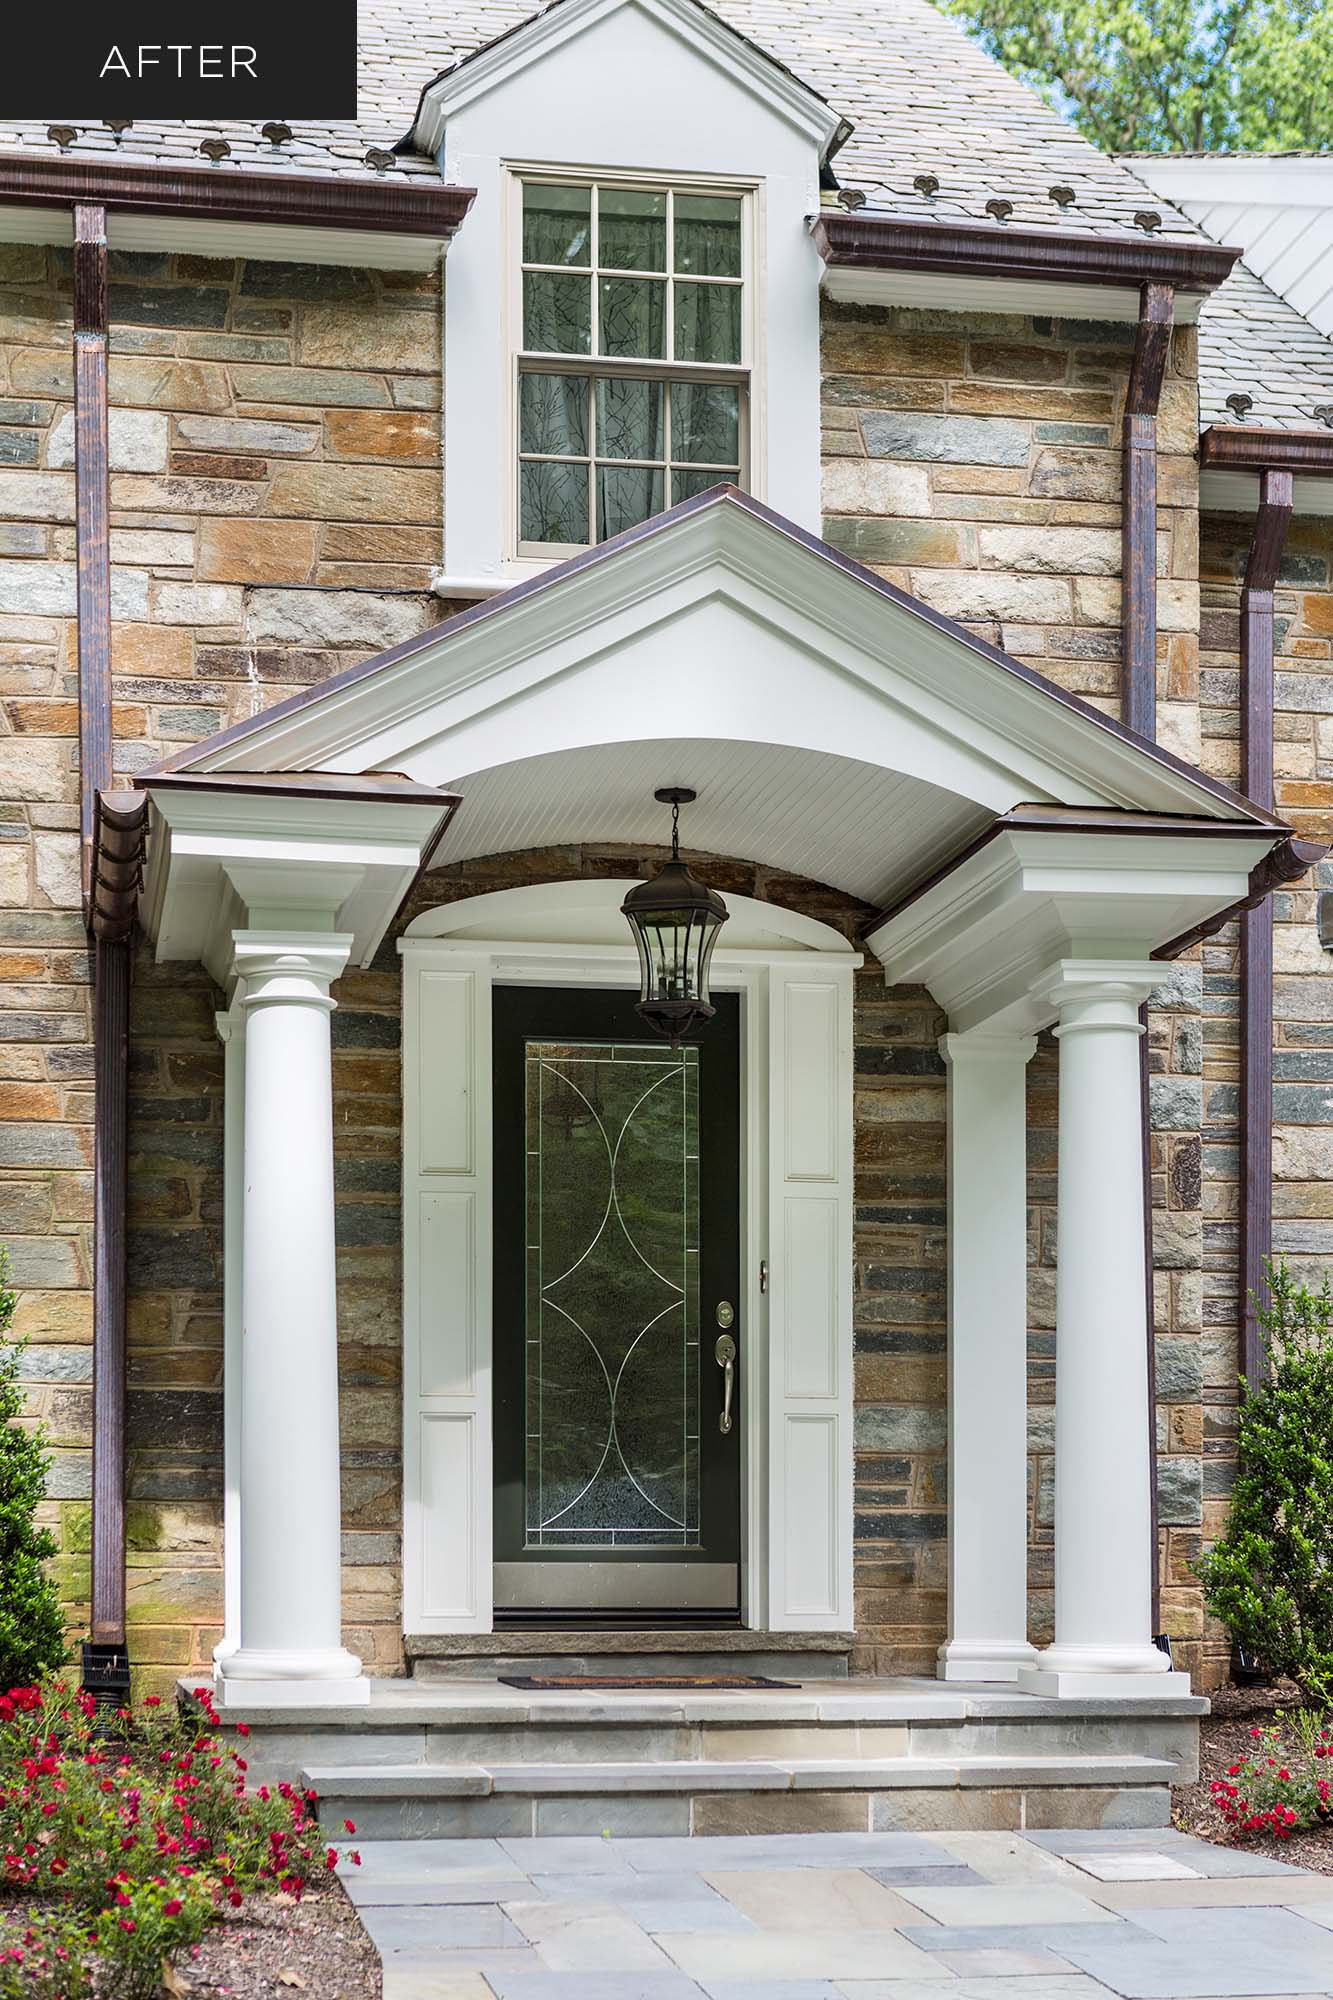 Elegant home portico with columns and leaded-glass door